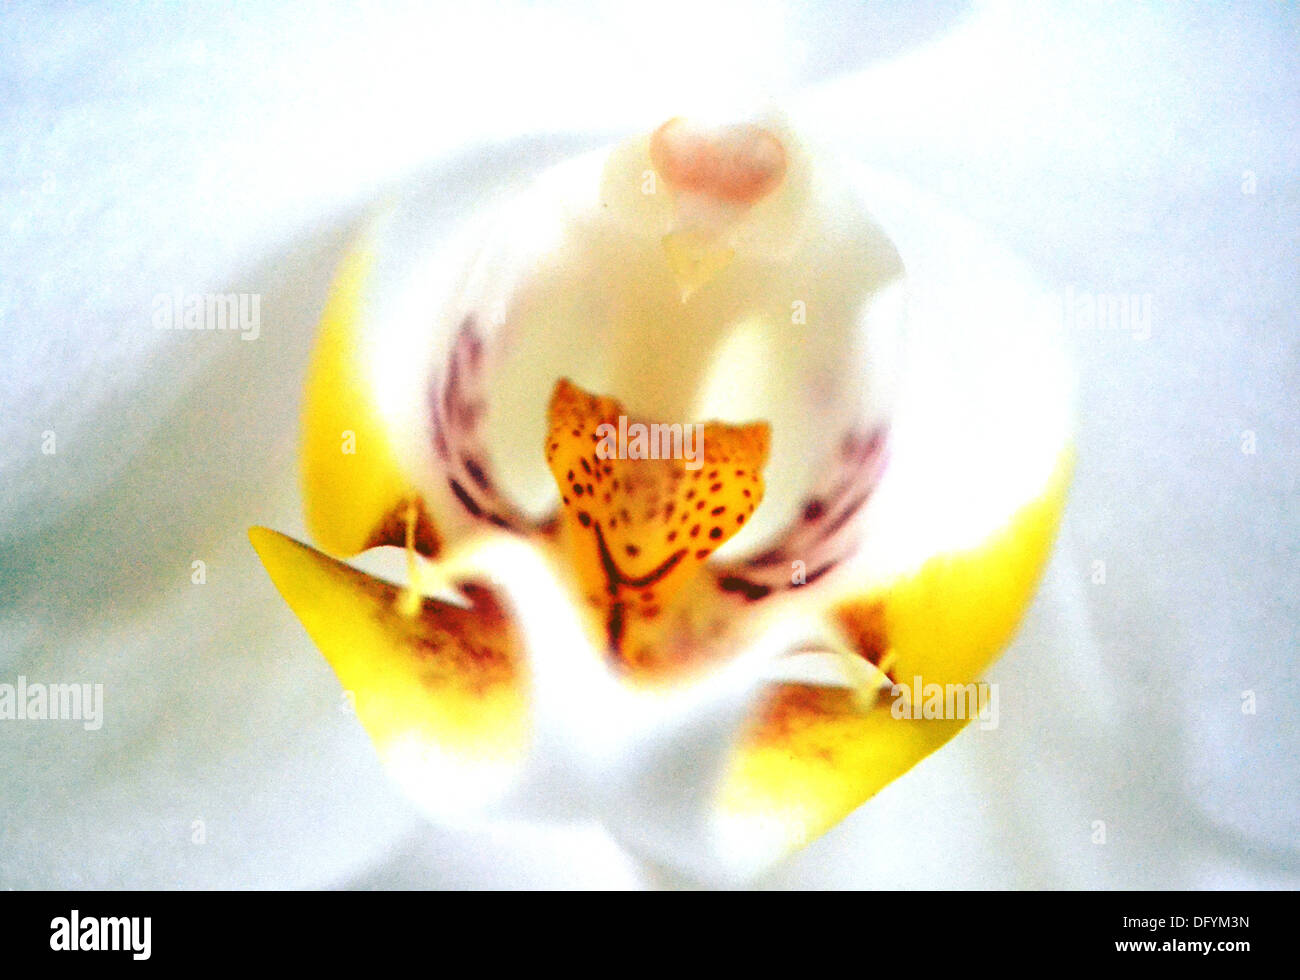 Orchid Anatomy Stock Photos & Orchid Anatomy Stock Images - Alamy